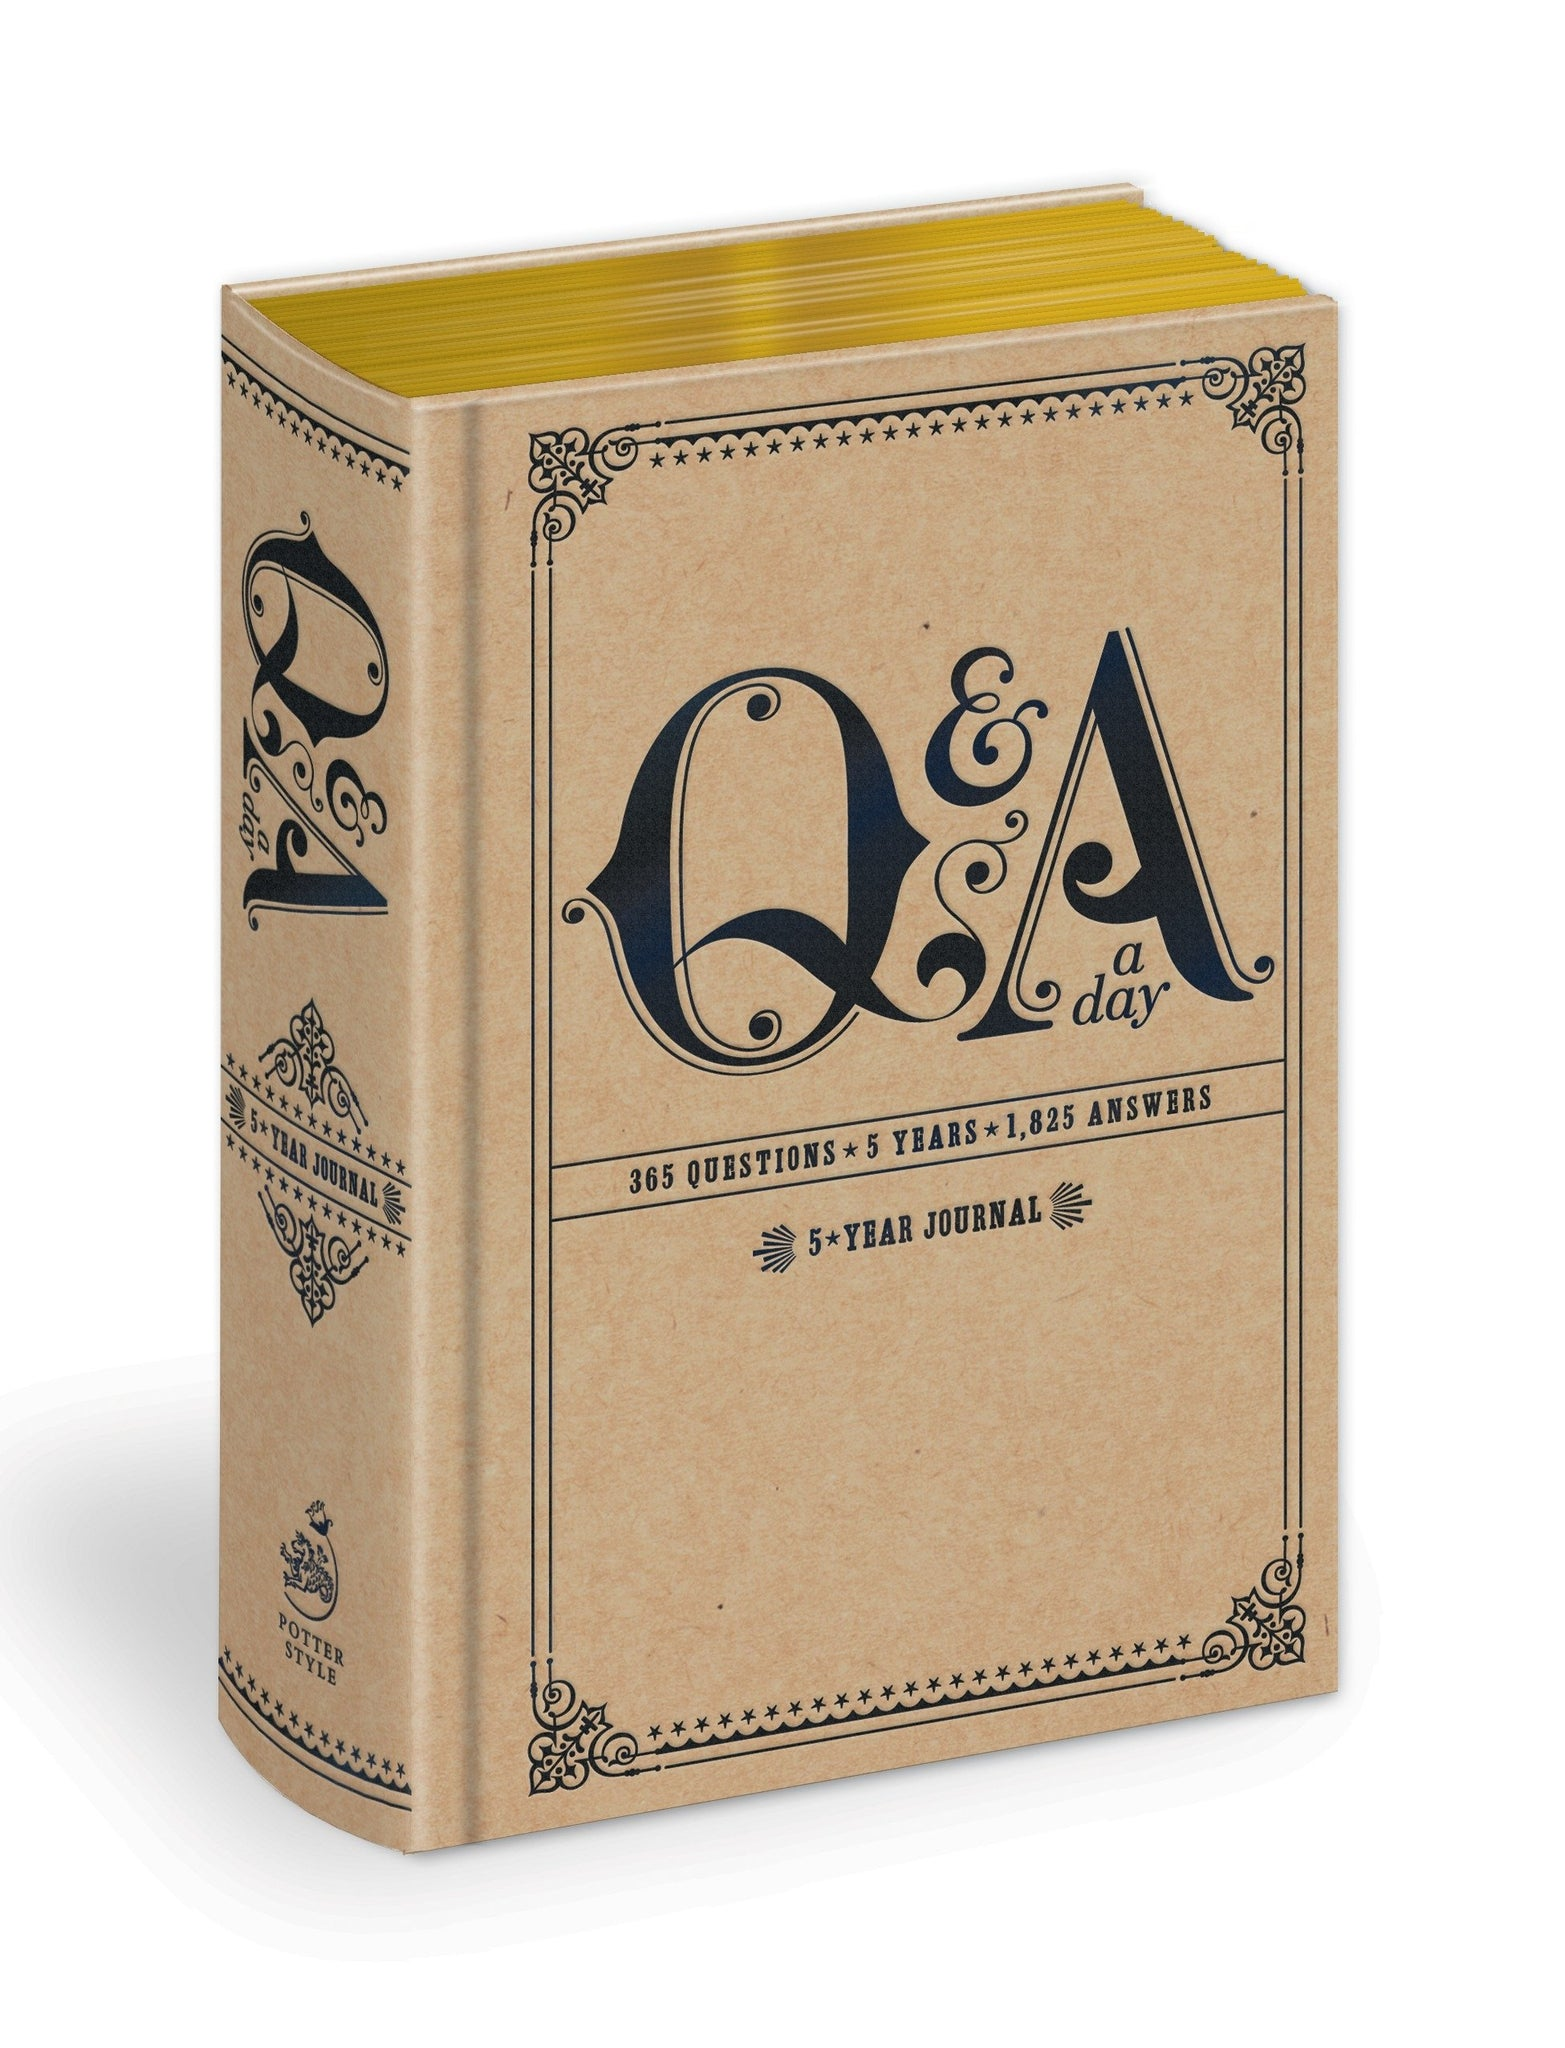 Q & A Five A Day:  Five Year Journal